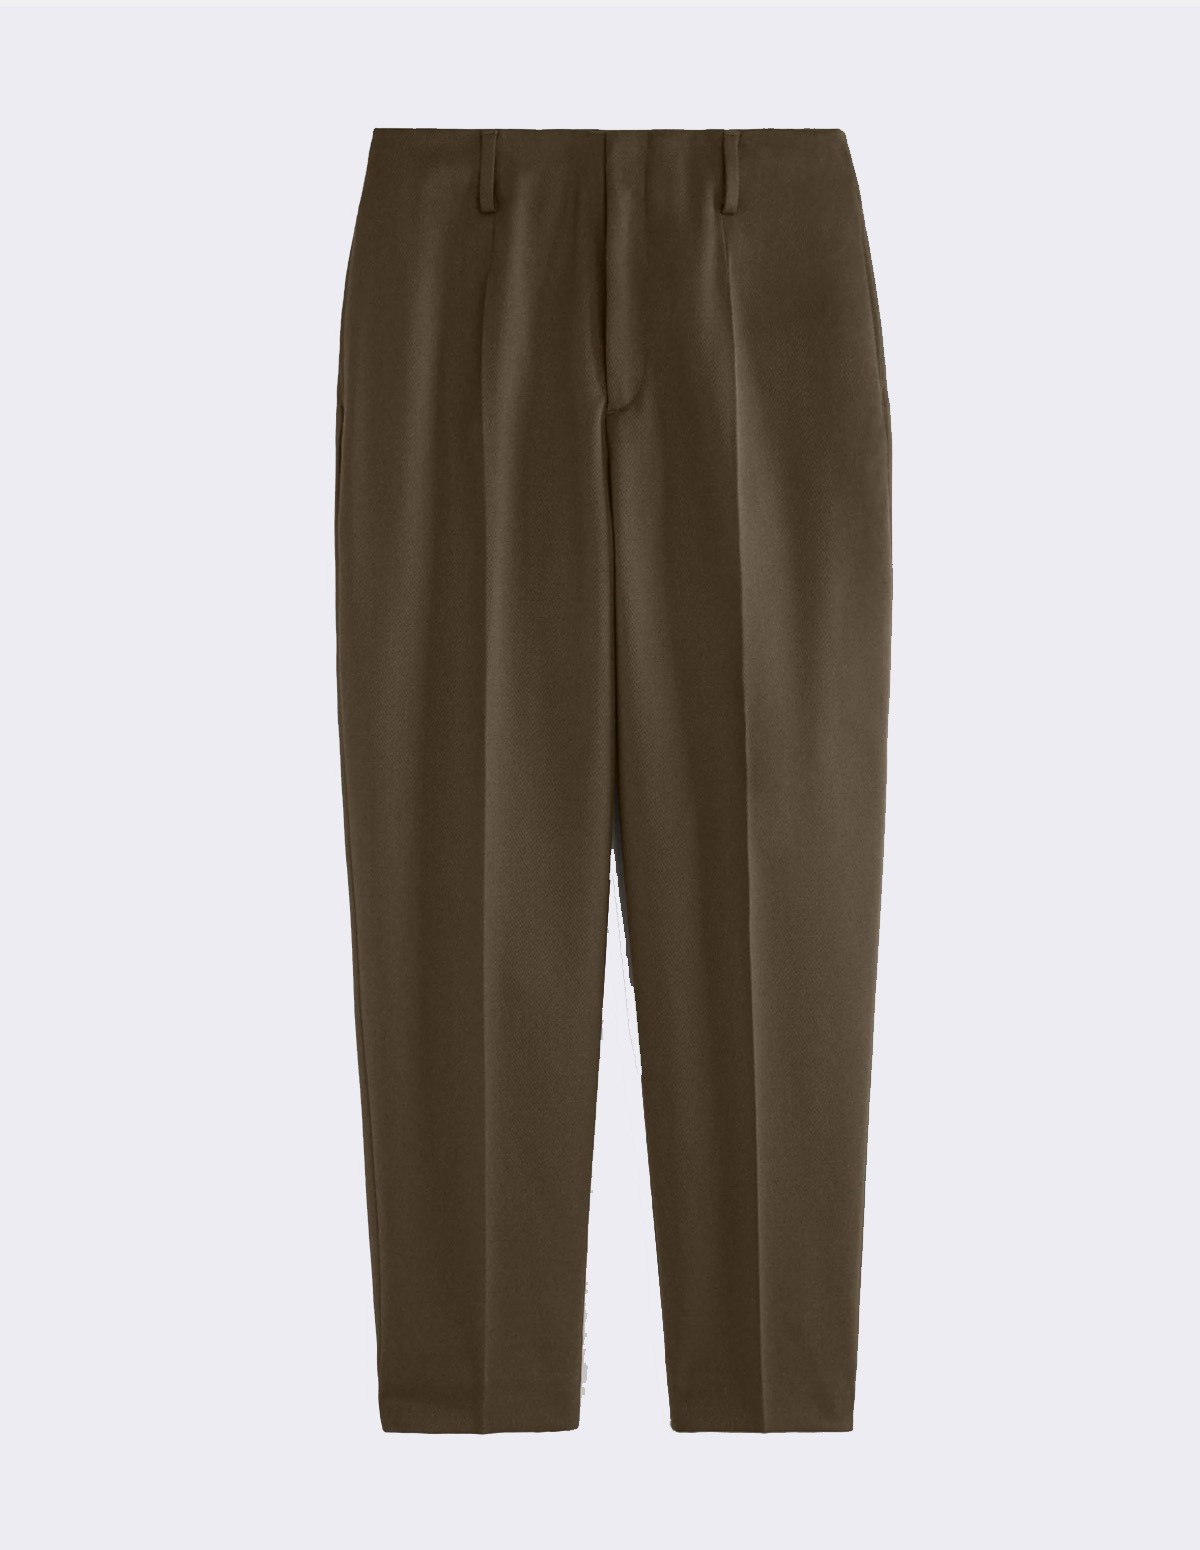 Karlie Trousers - PINE GREEN 8917